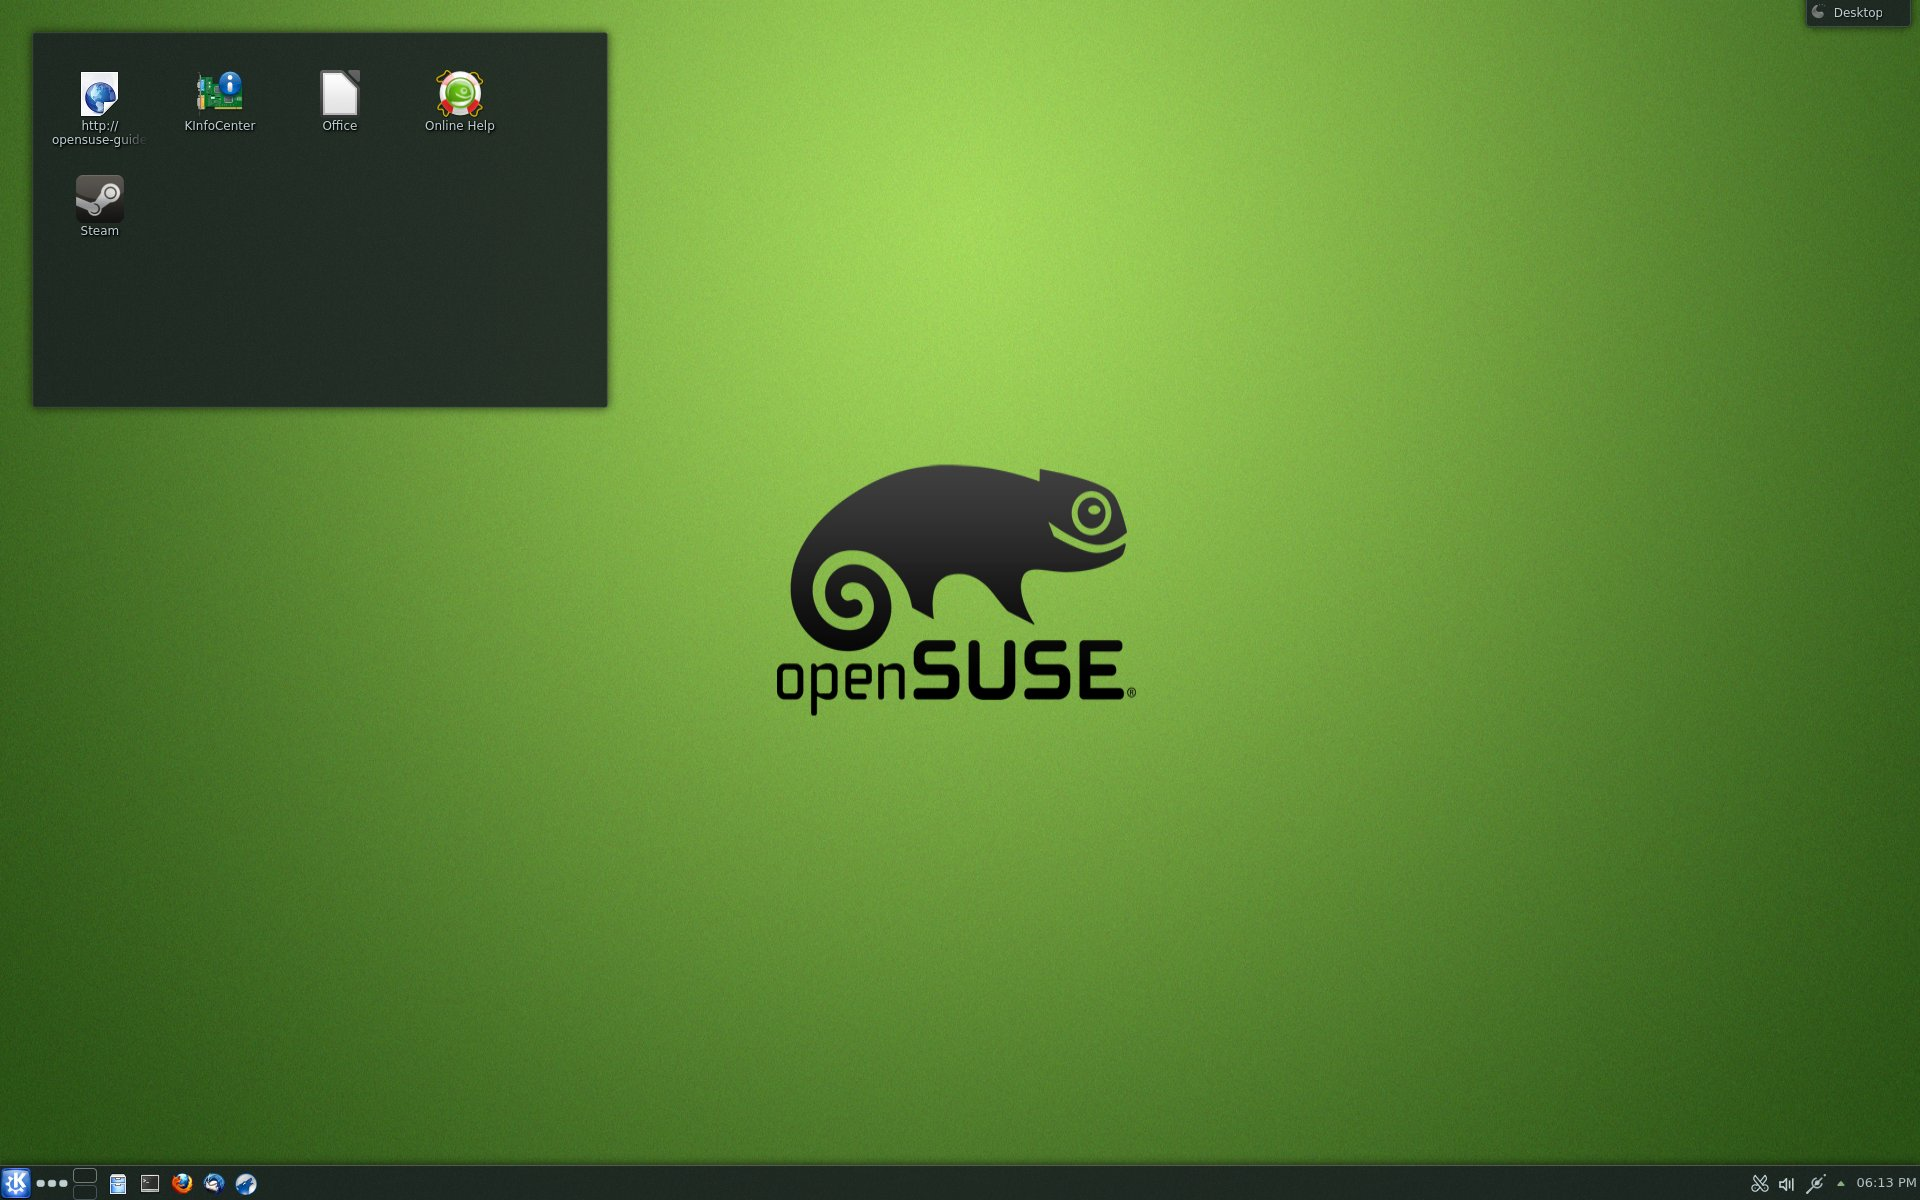 suse_clean.png